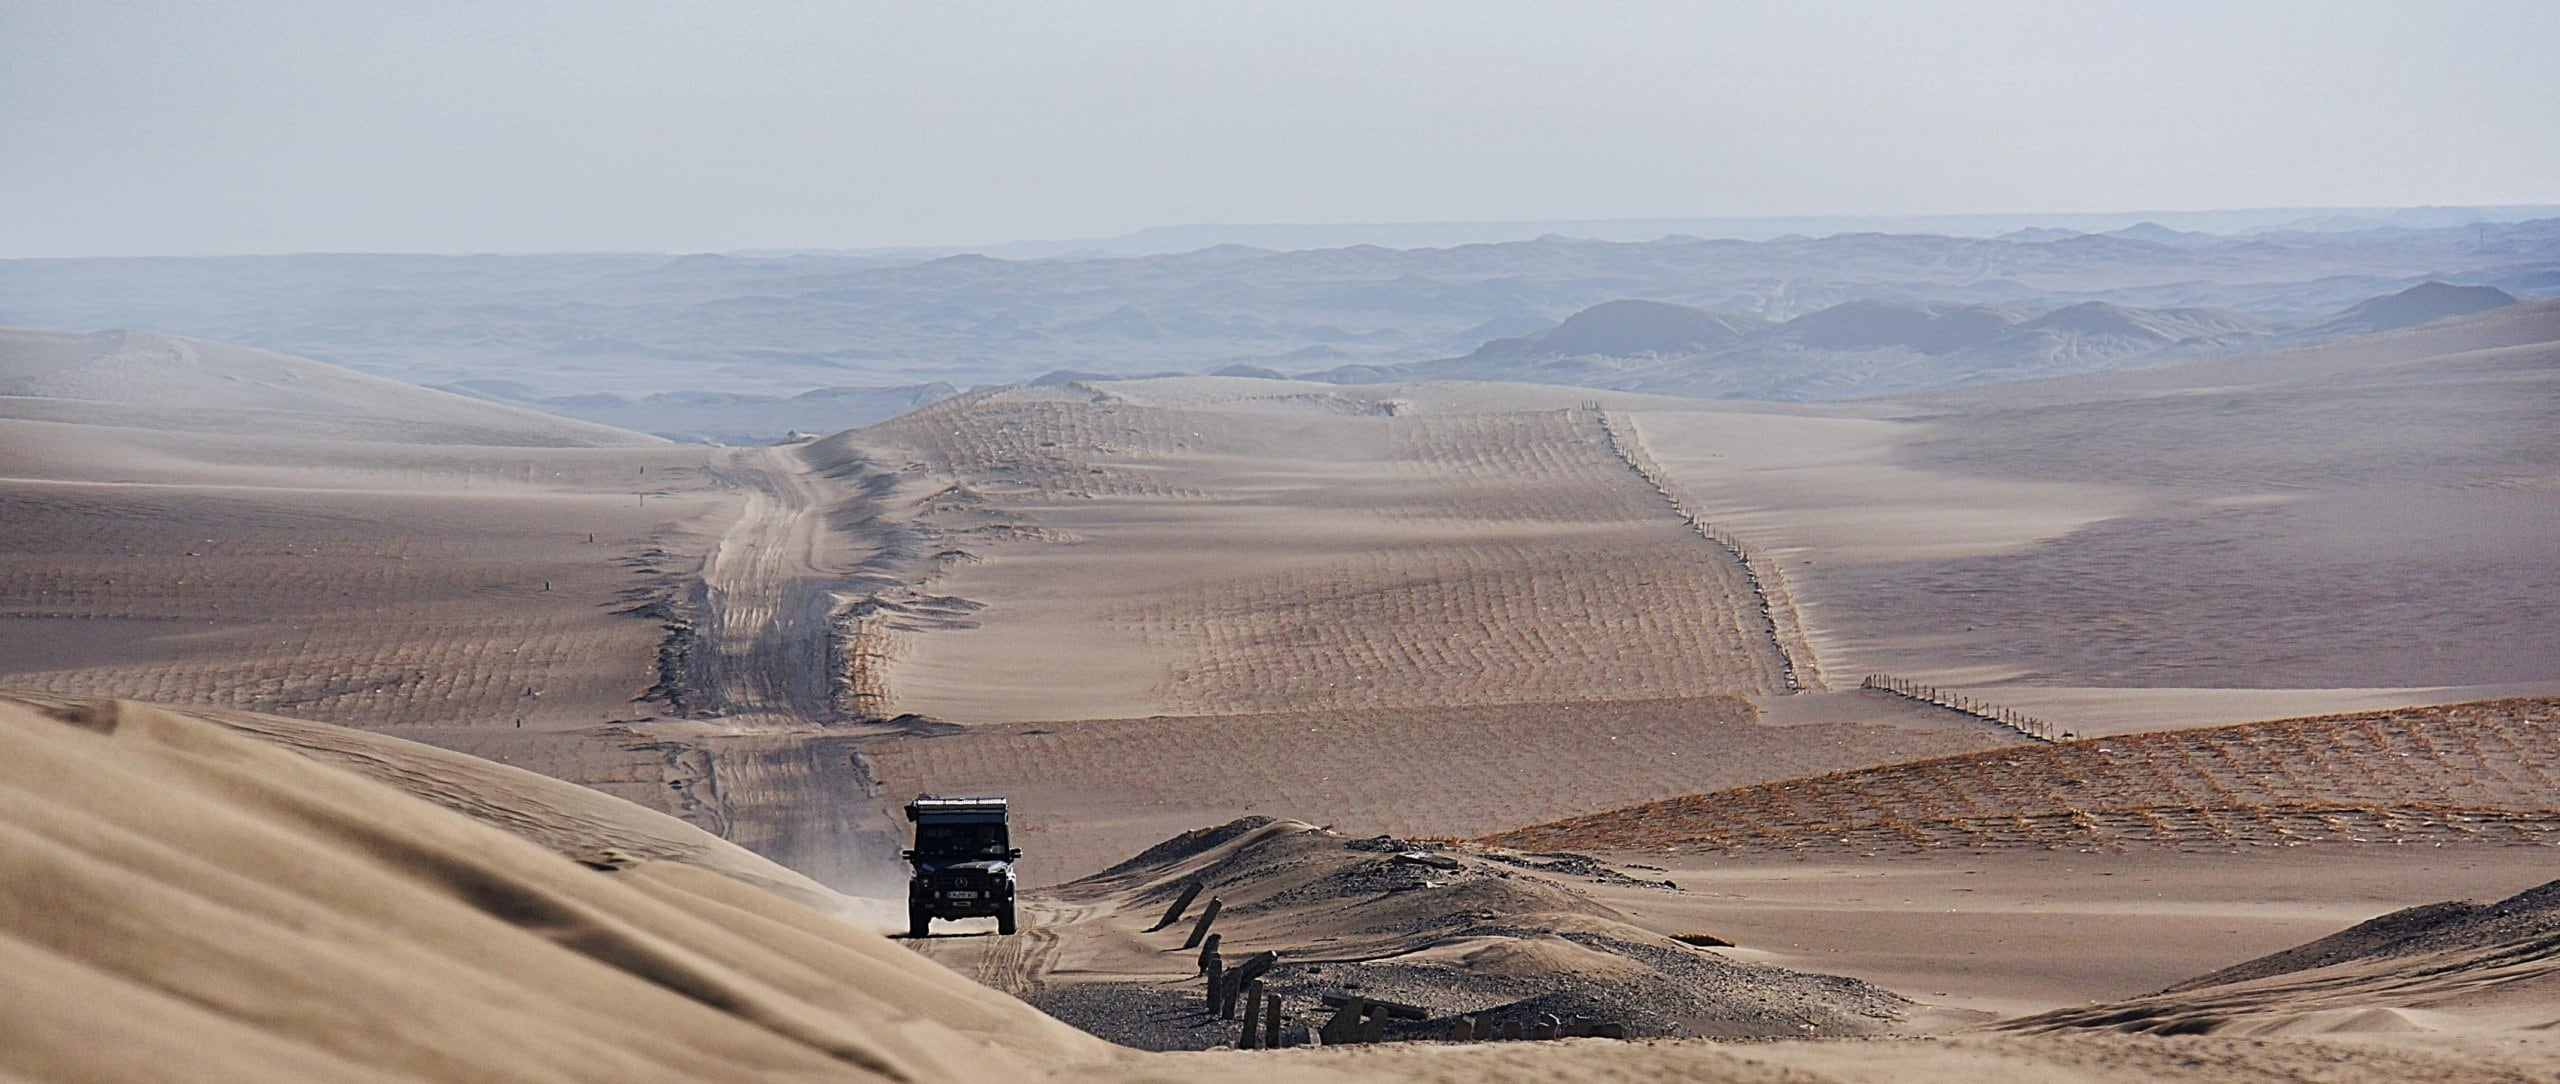 "Mercedes-Benz Driving Events ""Five-Day Dune Drive"" Training."